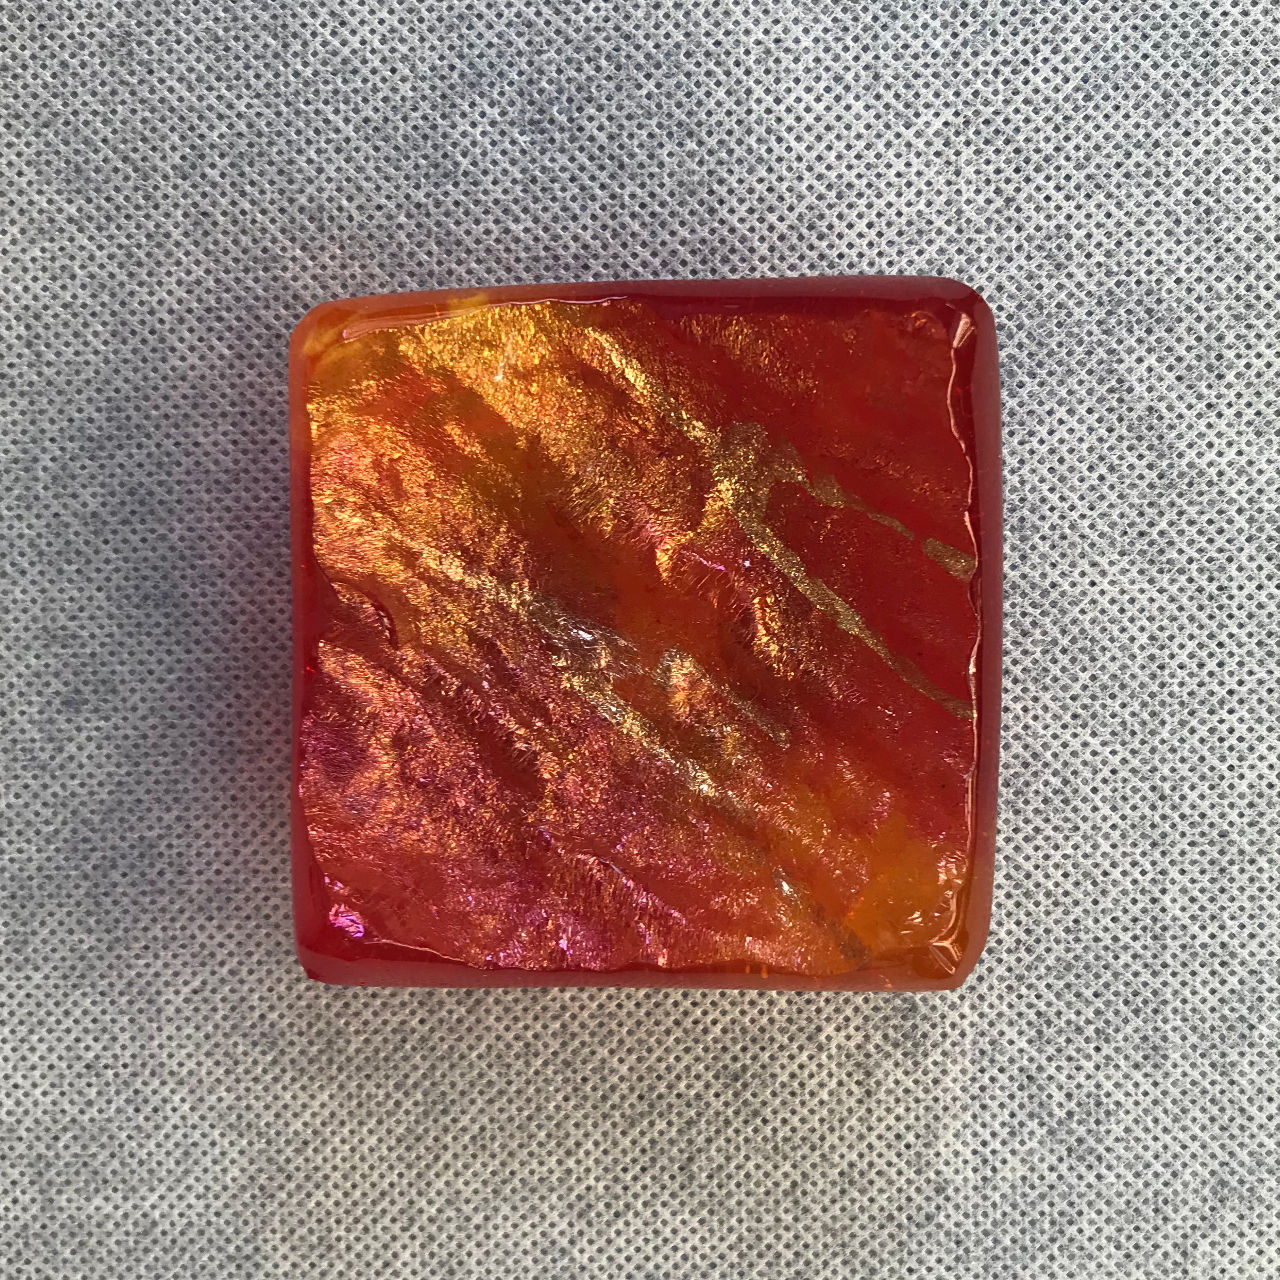 Glass Square Tray by Marian Fieldson red and orange